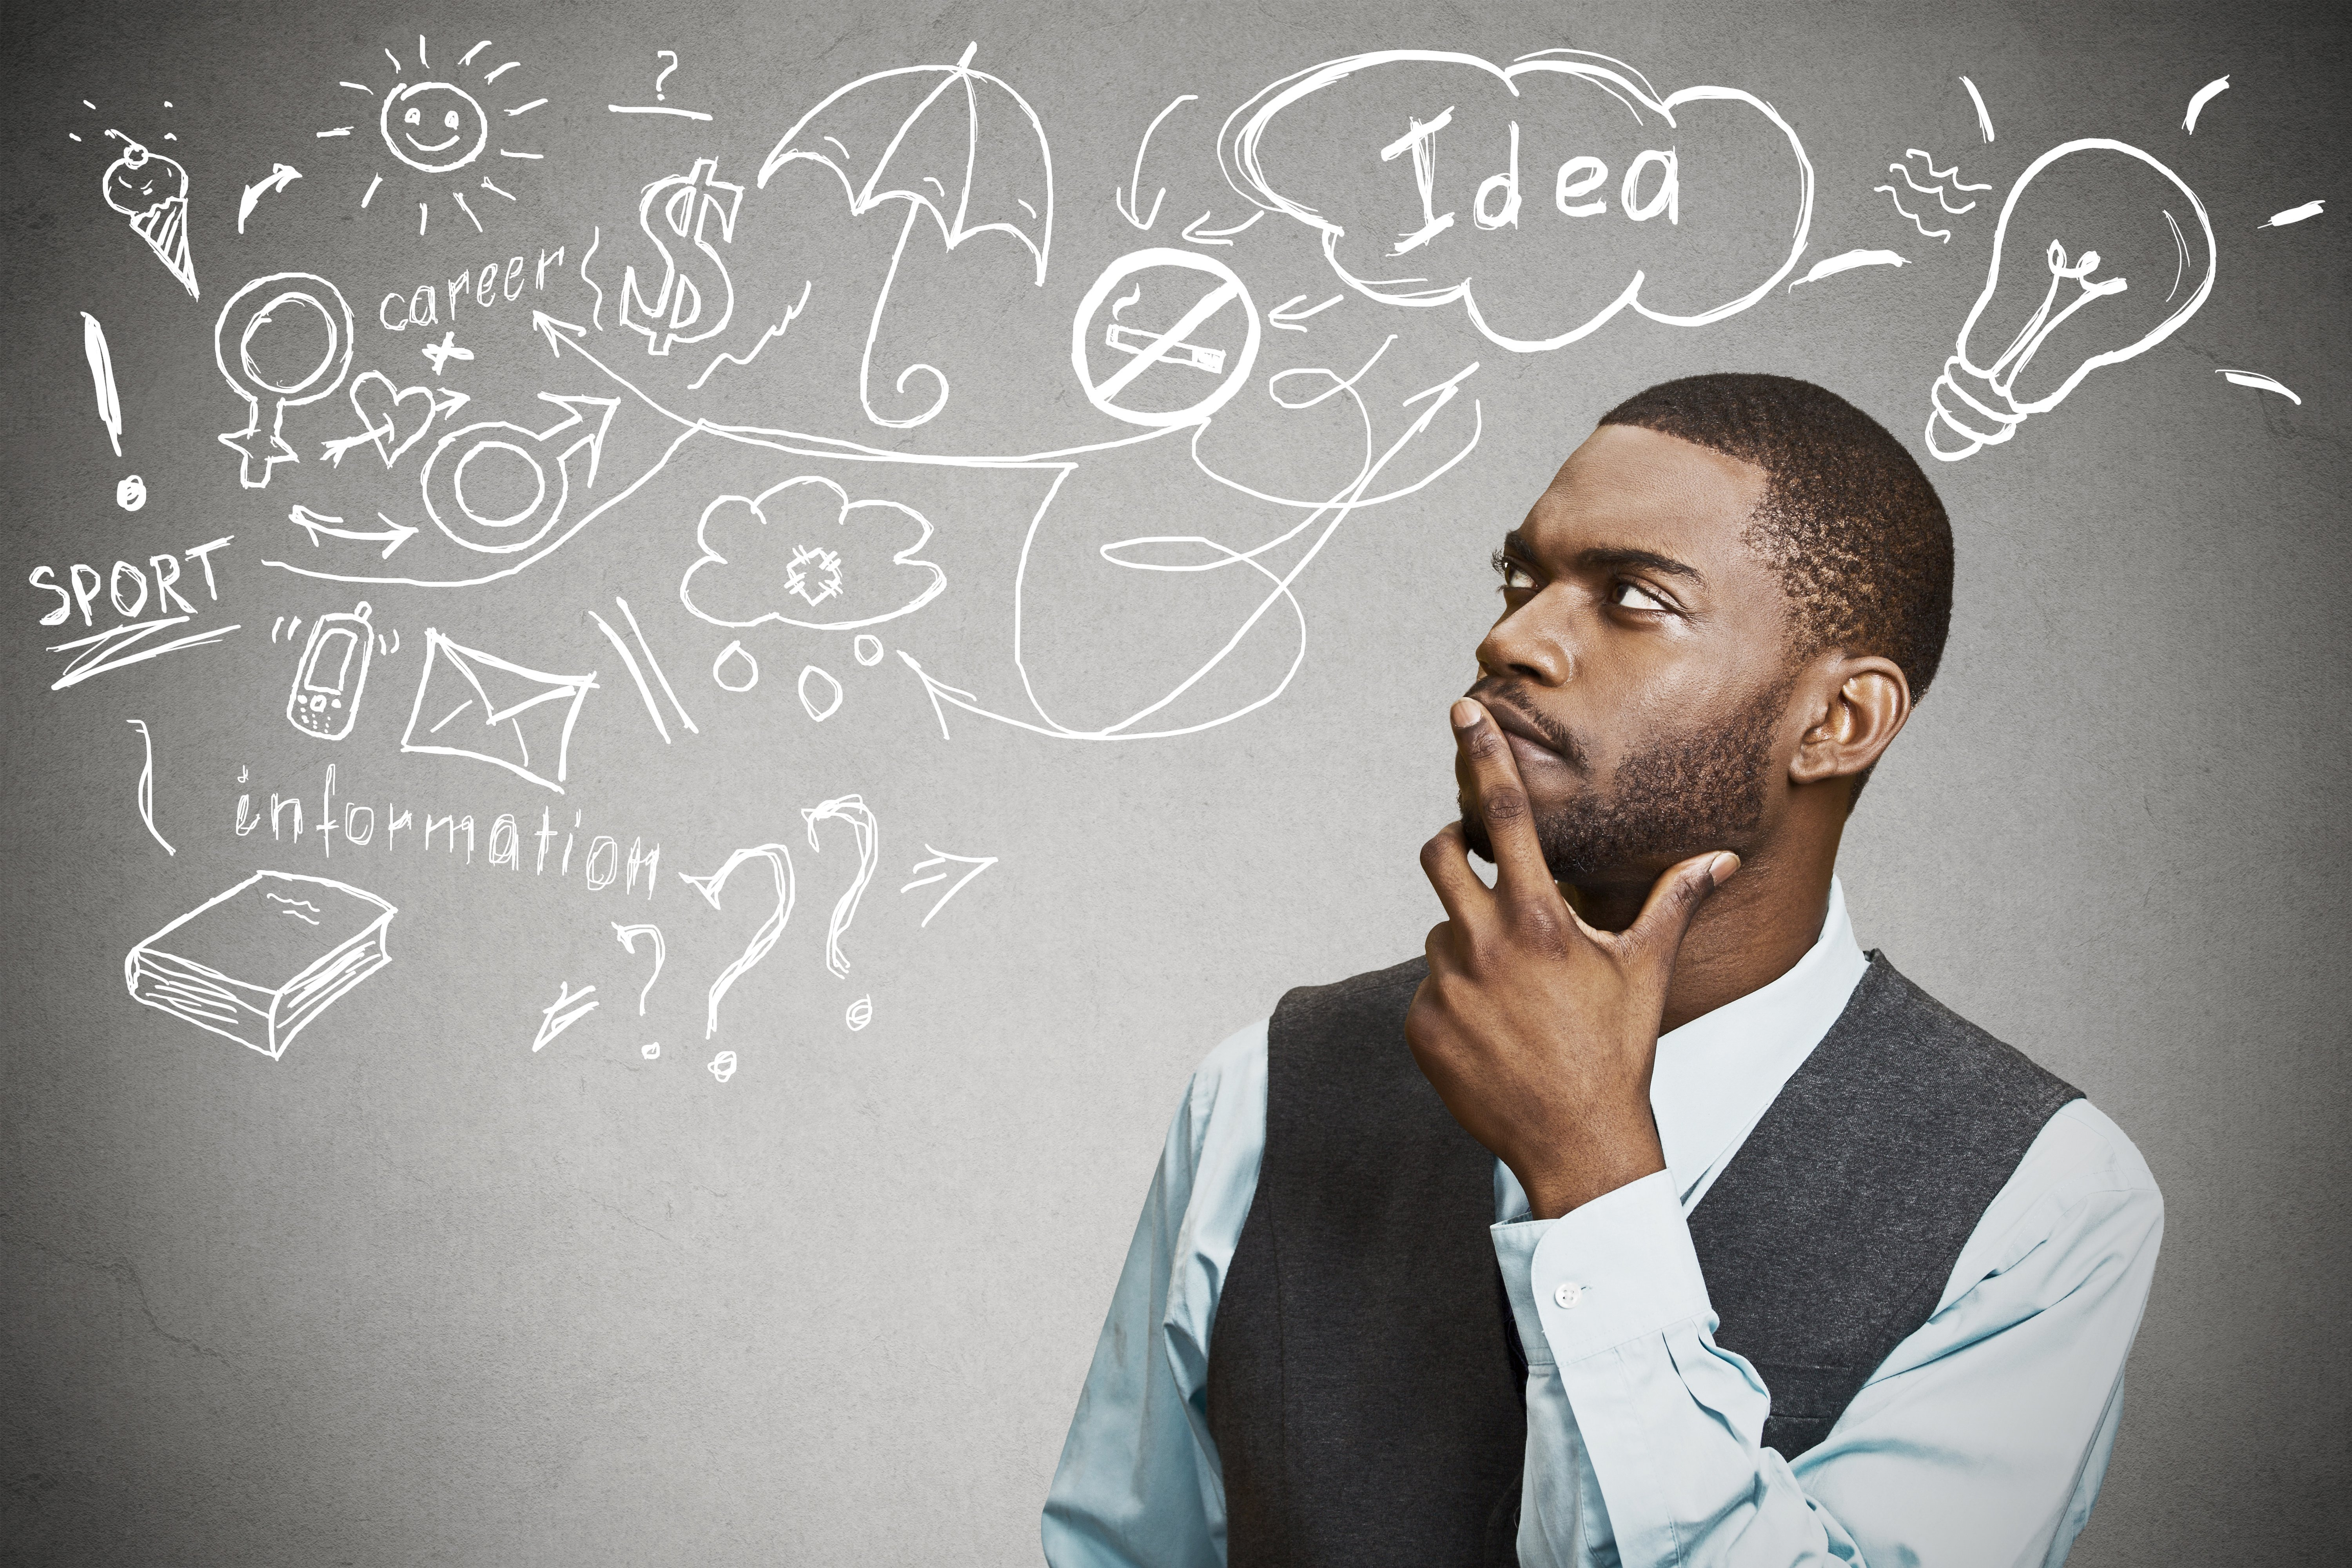 5 Questions to Ask Before Choosing a College Major